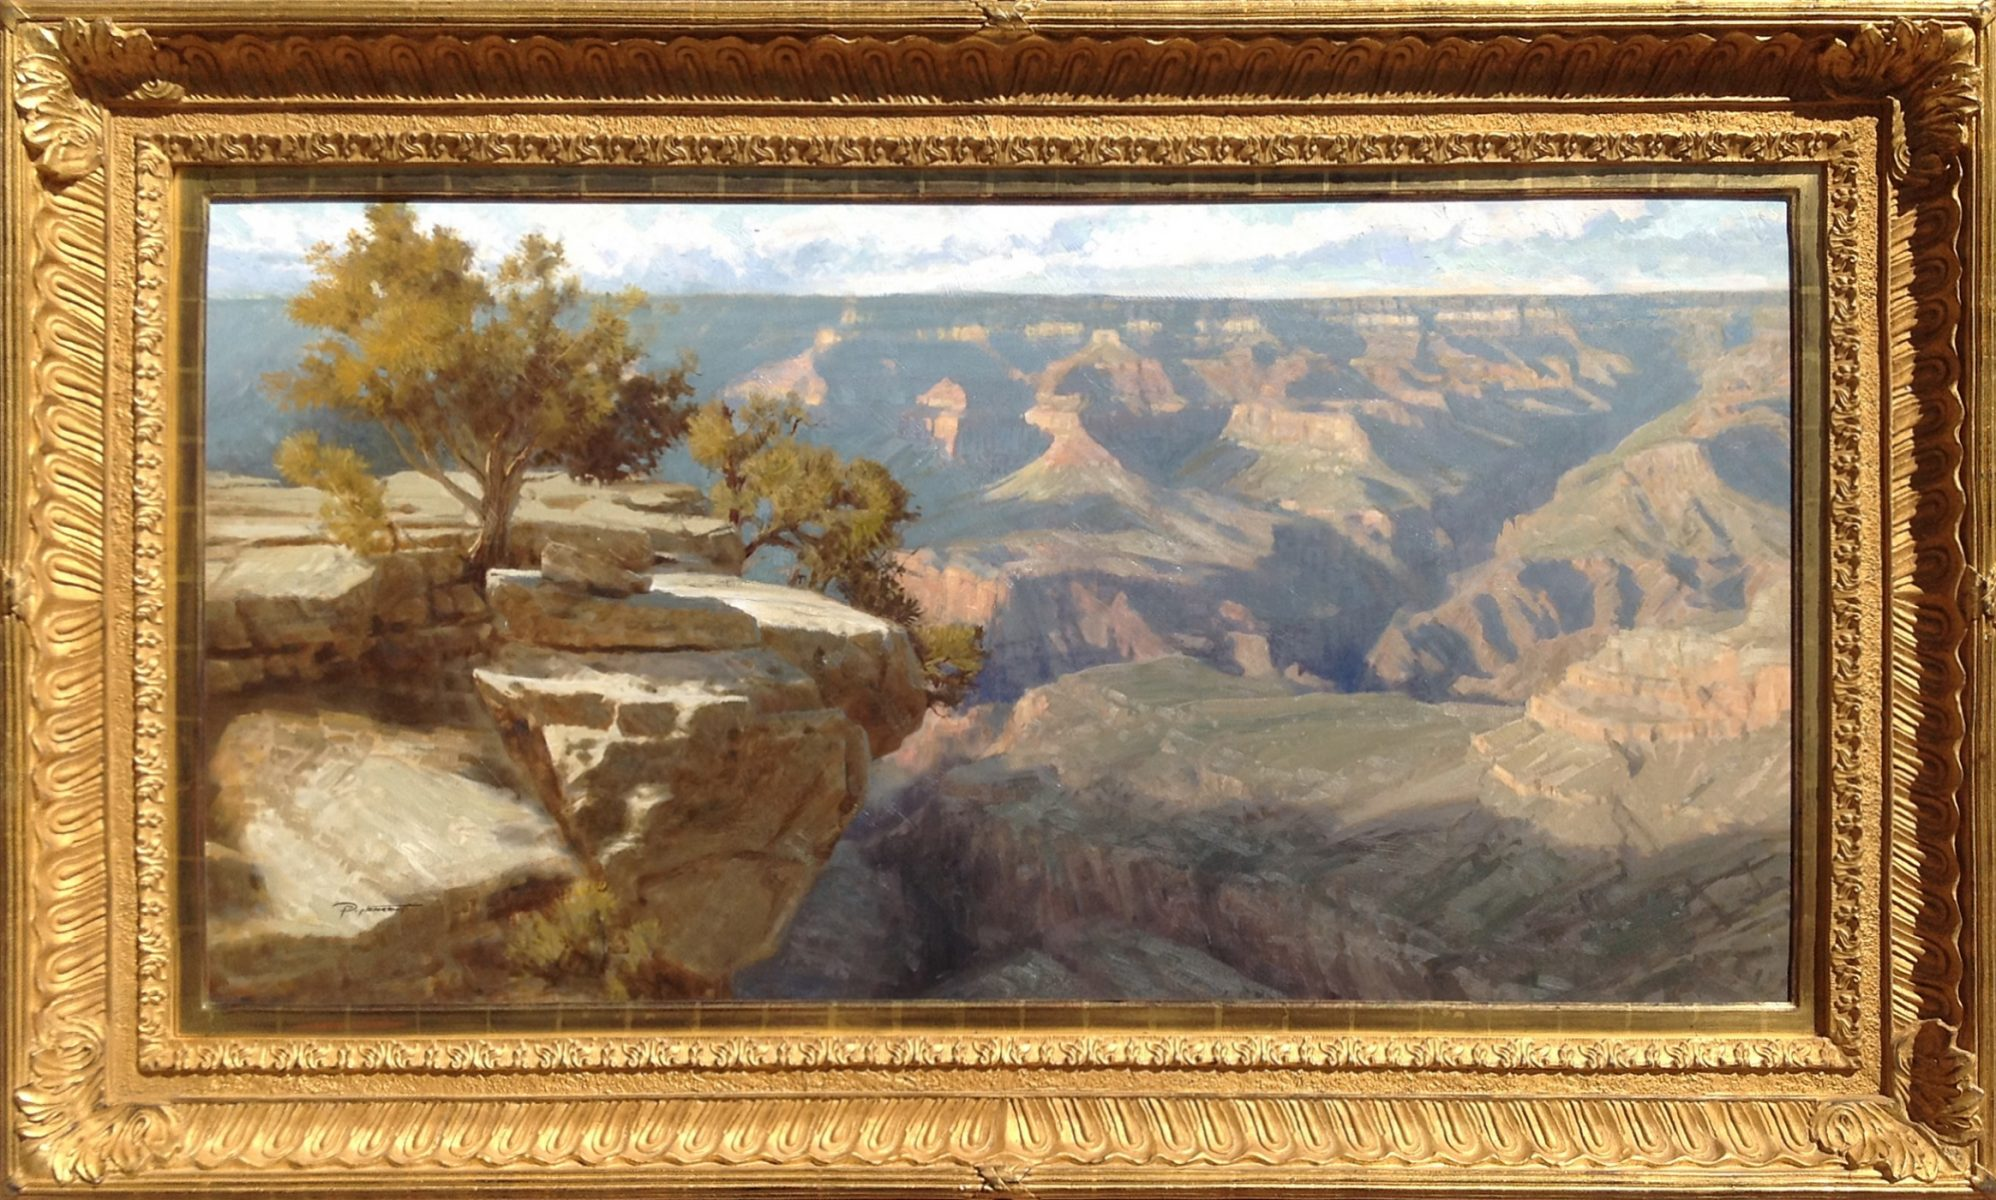 Canyon painting by landscape artist Phill Nethercott